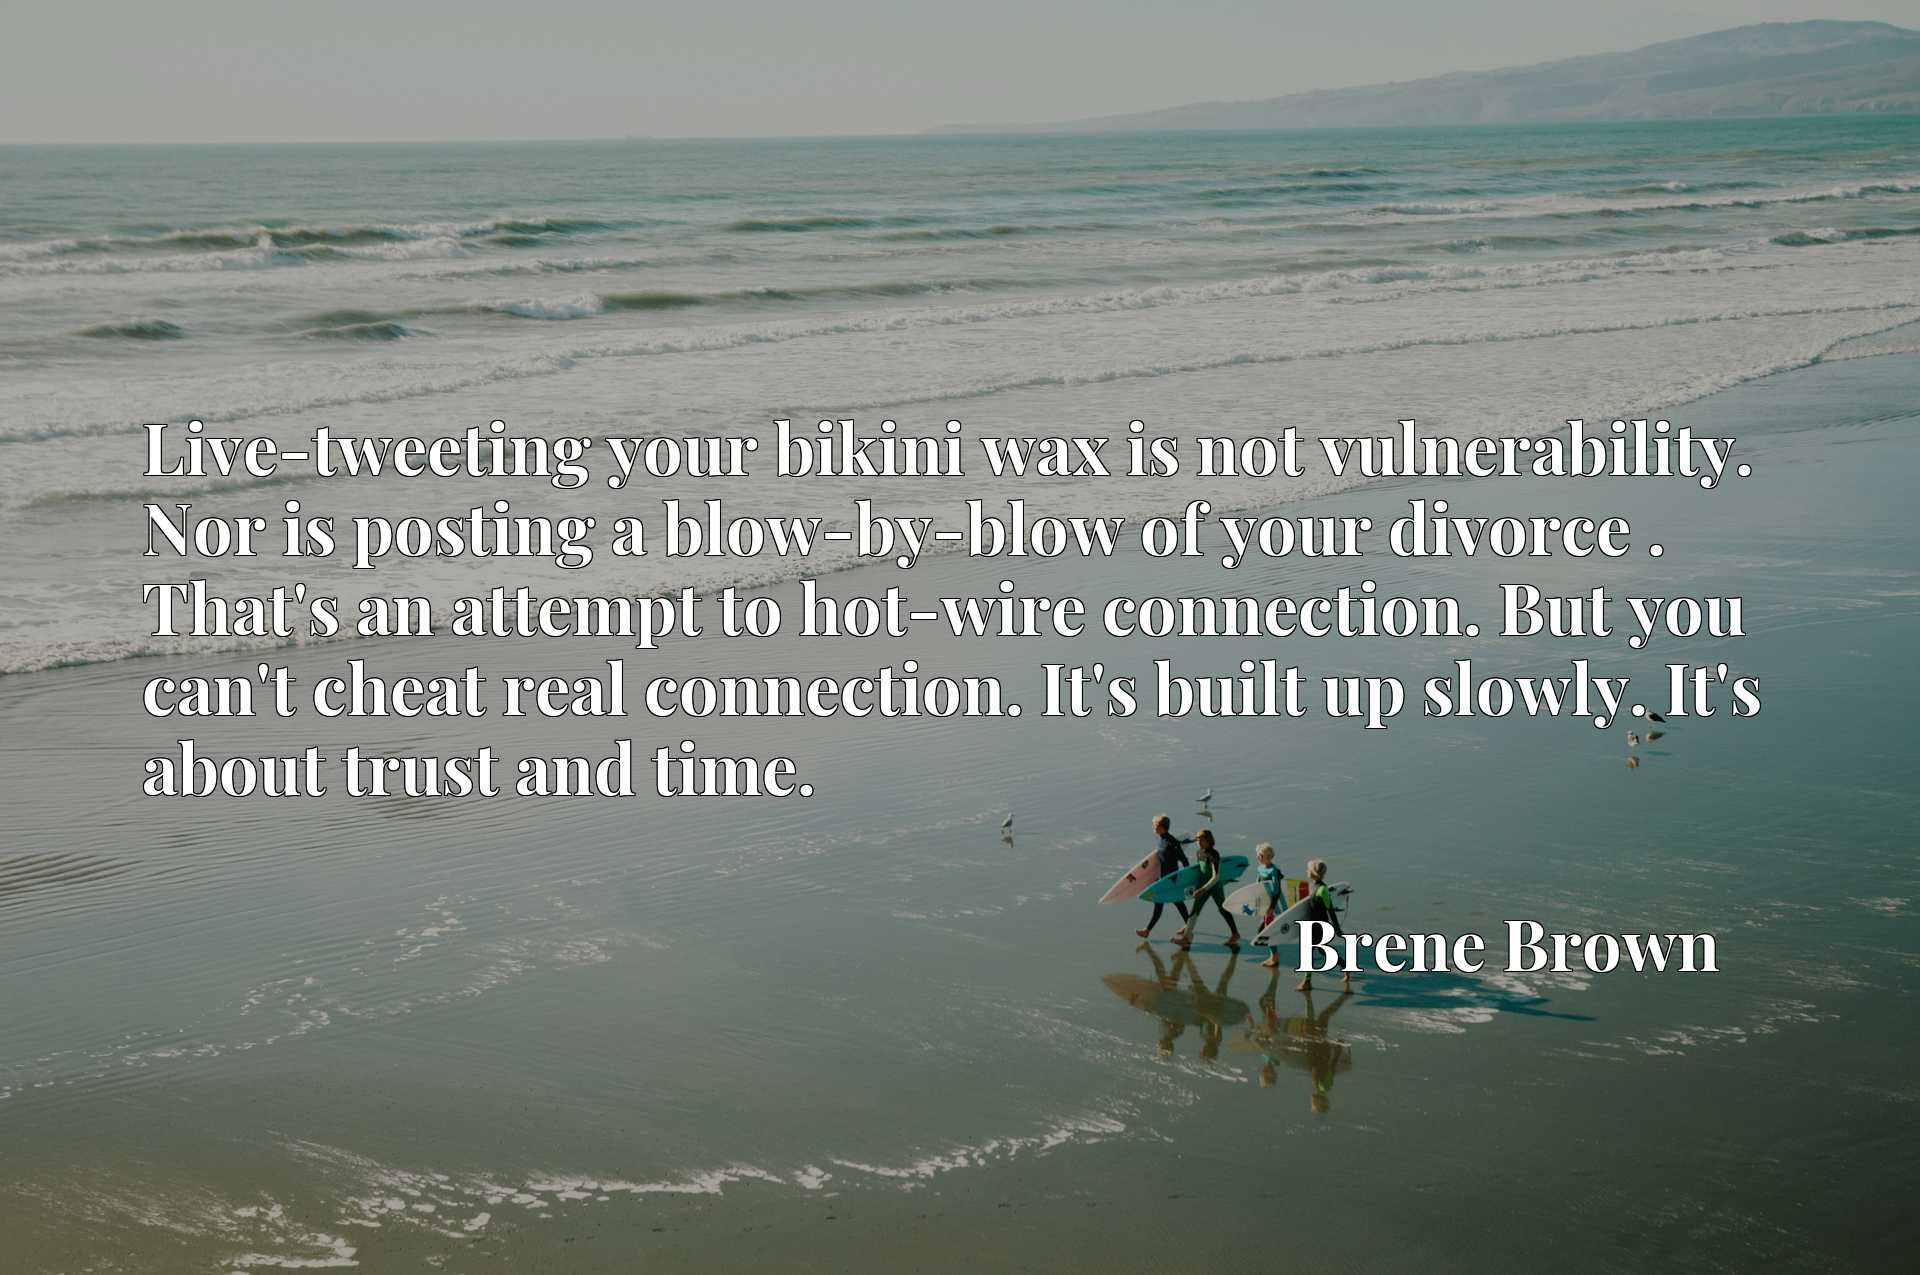 Live-tweeting your bikini wax is not vulnerability. Nor is posting a blow-by-blow of your divorce . That's an attempt to hot-wire connection. But you can't cheat real connection. It's built up slowly. It's about trust and time.